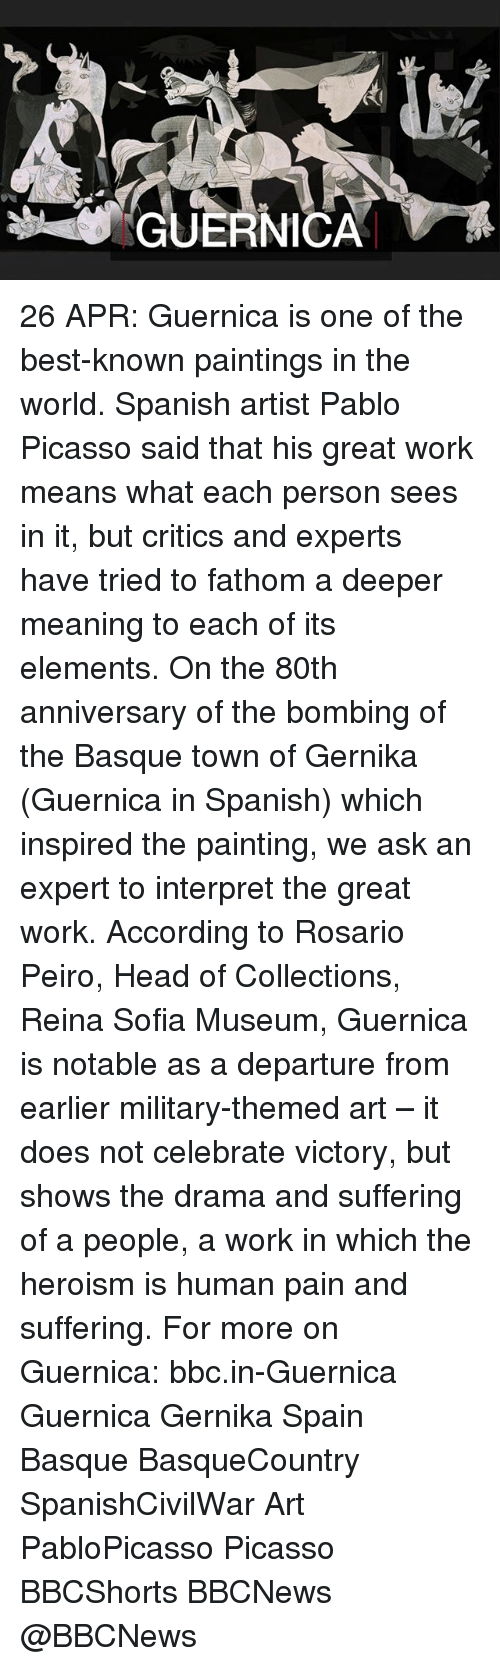 Rosario: GUERNICA 26 APR: Guernica is one of the best-known paintings in the world. Spanish artist Pablo Picasso said that his great work means what each person sees in it, but critics and experts have tried to fathom a deeper meaning to each of its elements. On the 80th anniversary of the bombing of the Basque town of Gernika (Guernica in Spanish) which inspired the painting, we ask an expert to interpret the great work. According to Rosario Peiro, Head of Collections, Reina Sofia Museum, Guernica is notable as a departure from earlier military-themed art – it does not celebrate victory, but shows the drama and suffering of a people, a work in which the heroism is human pain and suffering. For more on Guernica: bbc.in-Guernica Guernica Gernika Spain Basque BasqueCountry SpanishCivilWar Art PabloPicasso Picasso BBCShorts BBCNews @BBCNews